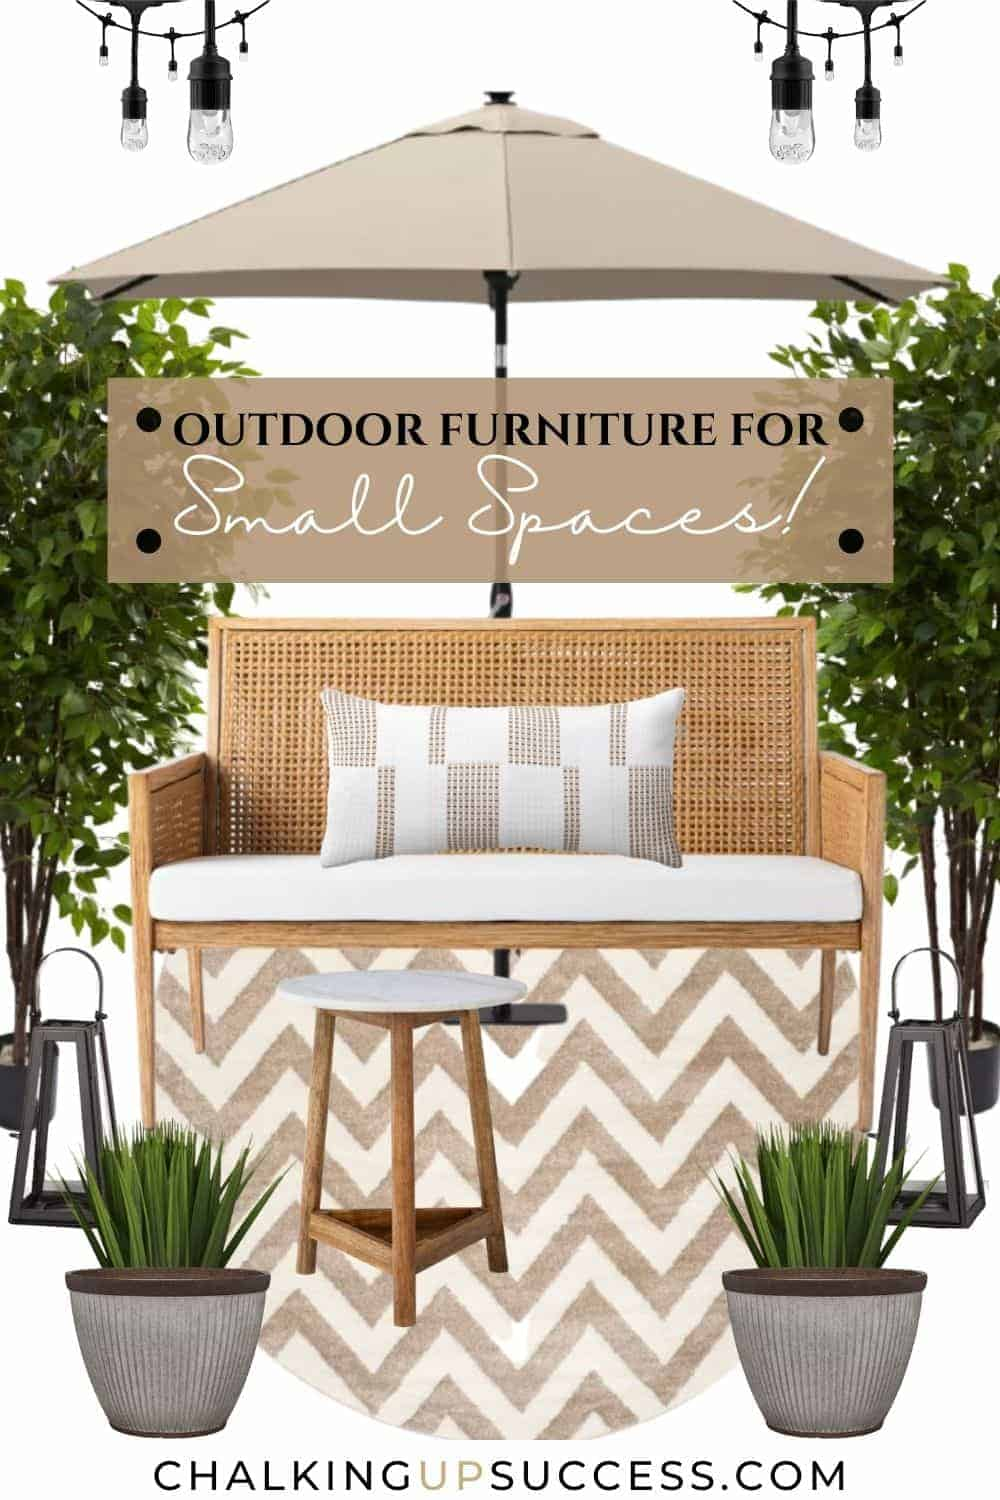 This outdoor furniture for small spaces includes a low-backed rattan loveseat with a long white seat cushion. A lumbar pillow in white and tan geometric design rests on the seat. Under the loveseat is a round cream and tan coloured chevron rug. Plants and large faux green trees suround the loveseat.